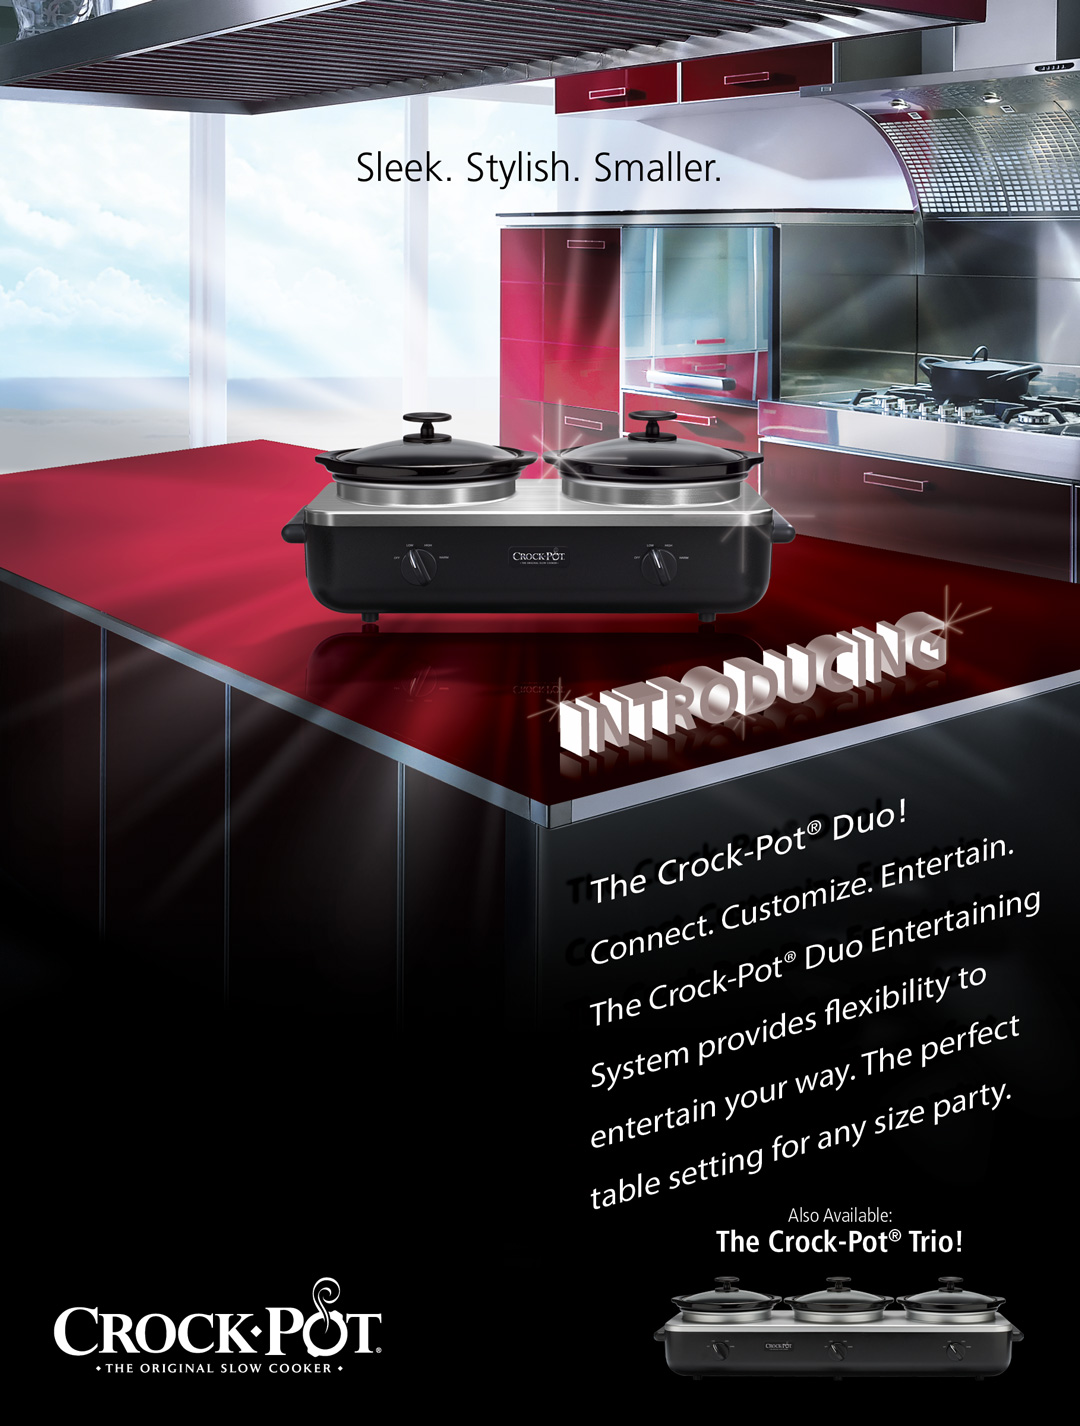 CrockPot Duo Ad Design